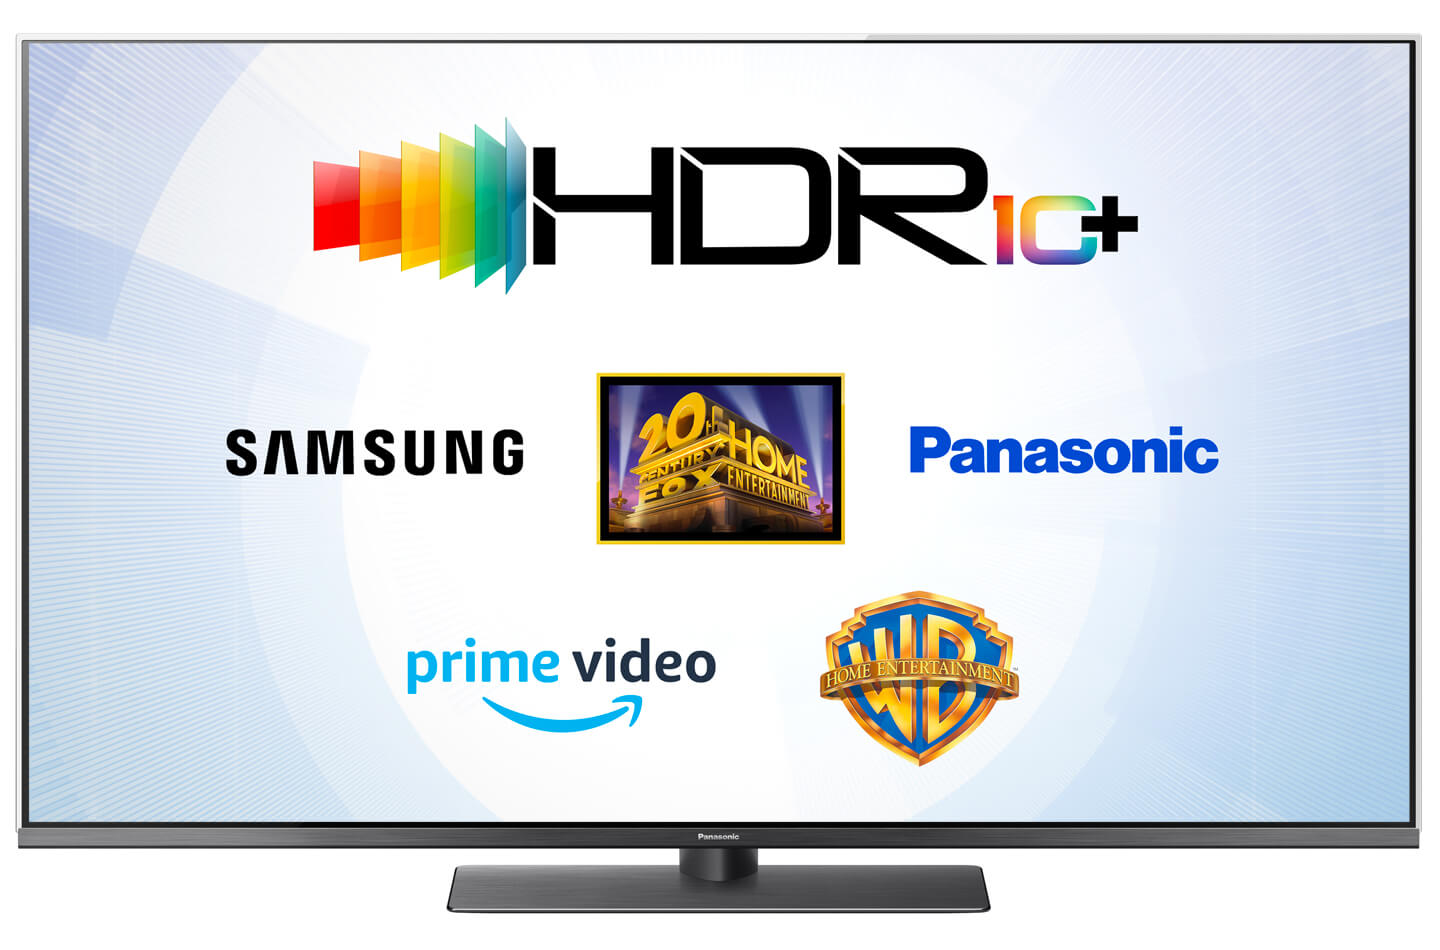 Panasonic 4K LED TV's